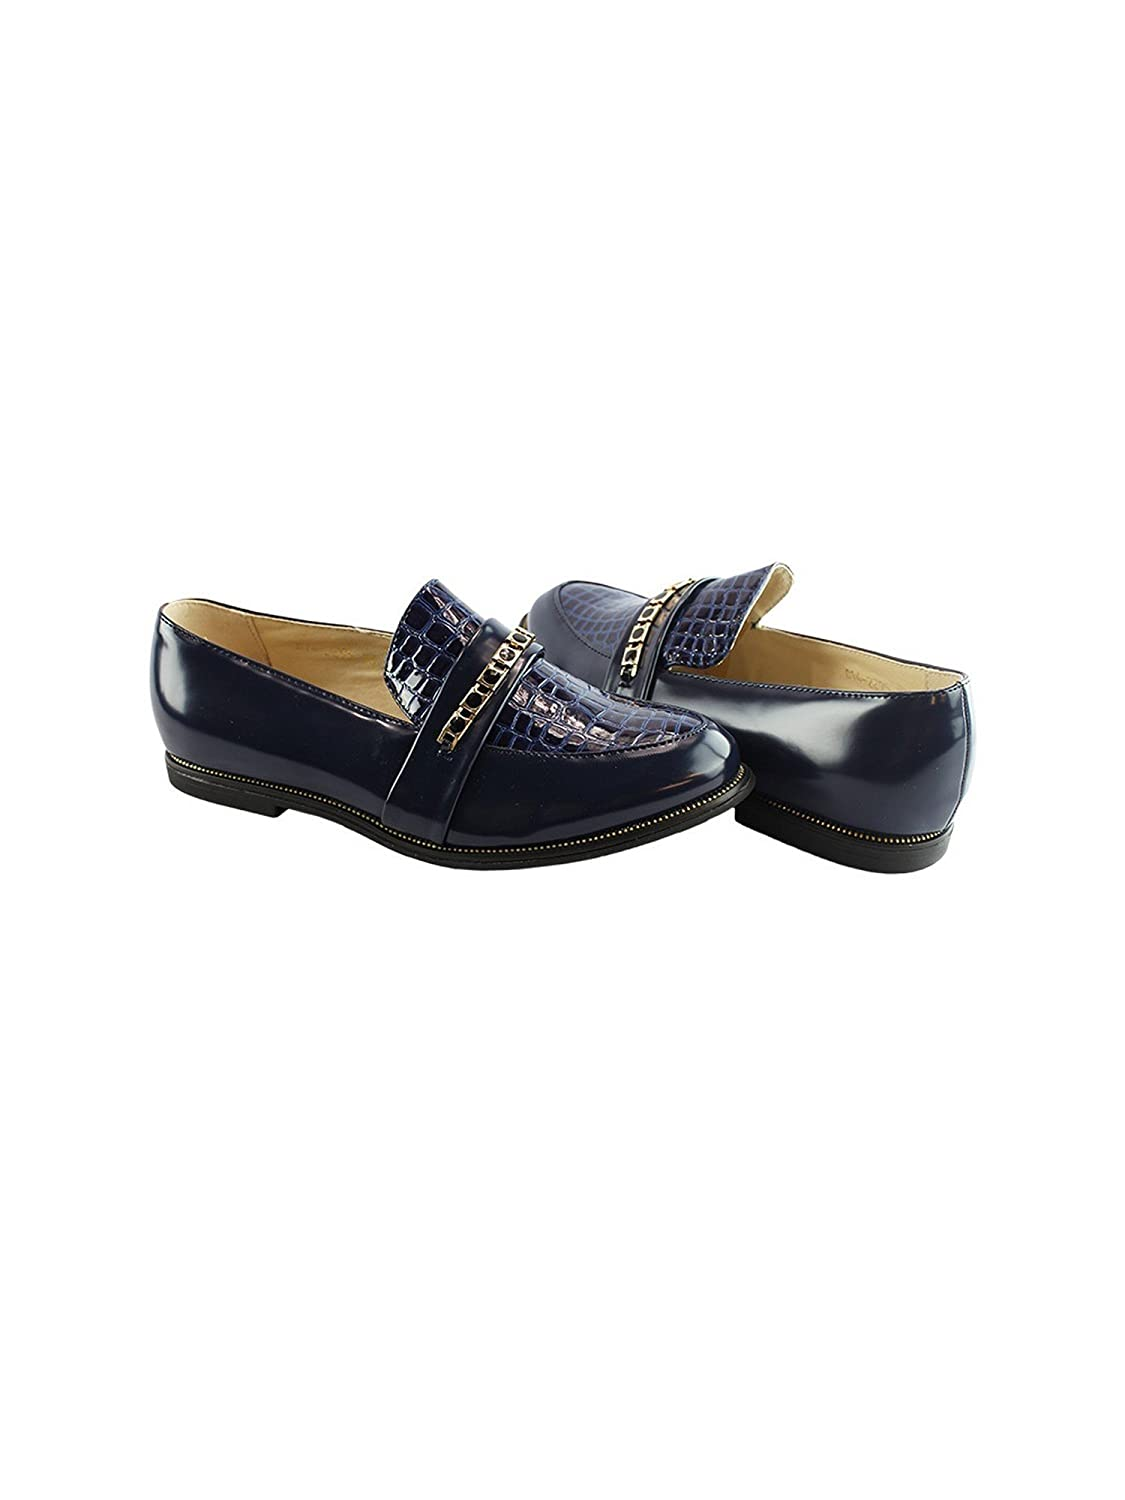 Liyu Adult Blue Snake Skin Top Panel Stone Accented Slip-On Shoes 6-10 Women